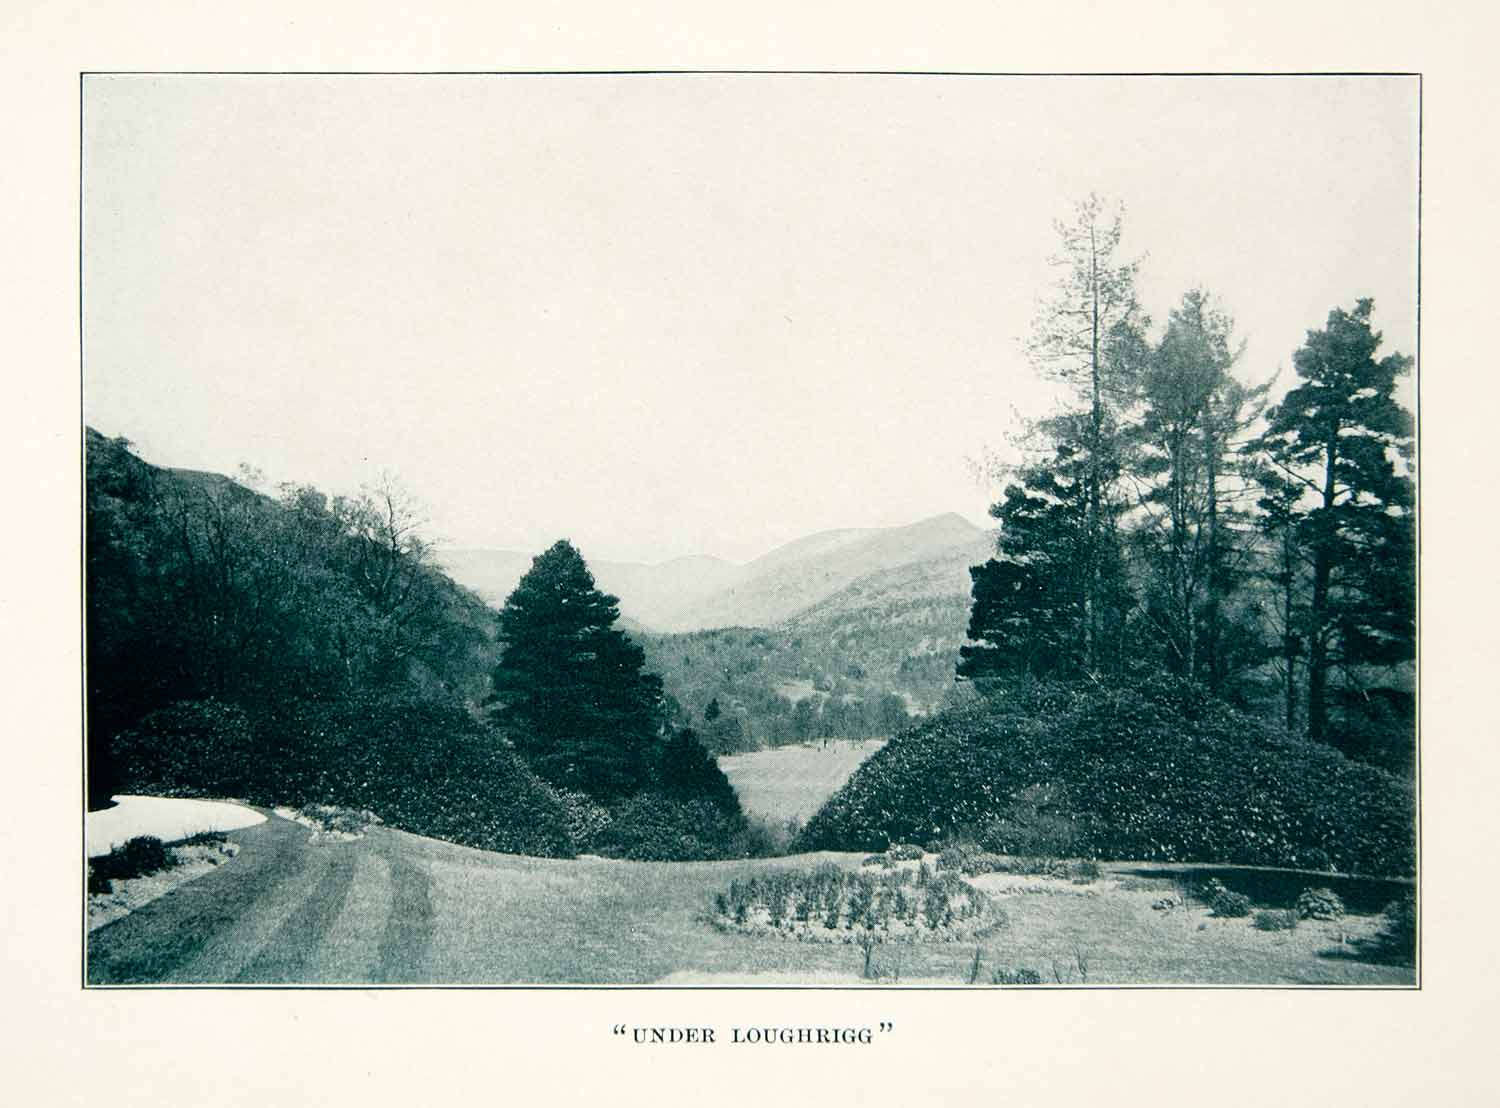 1914 Print Loughrigg Fell Cumbria England Lake District Landscape Vista XGXC2